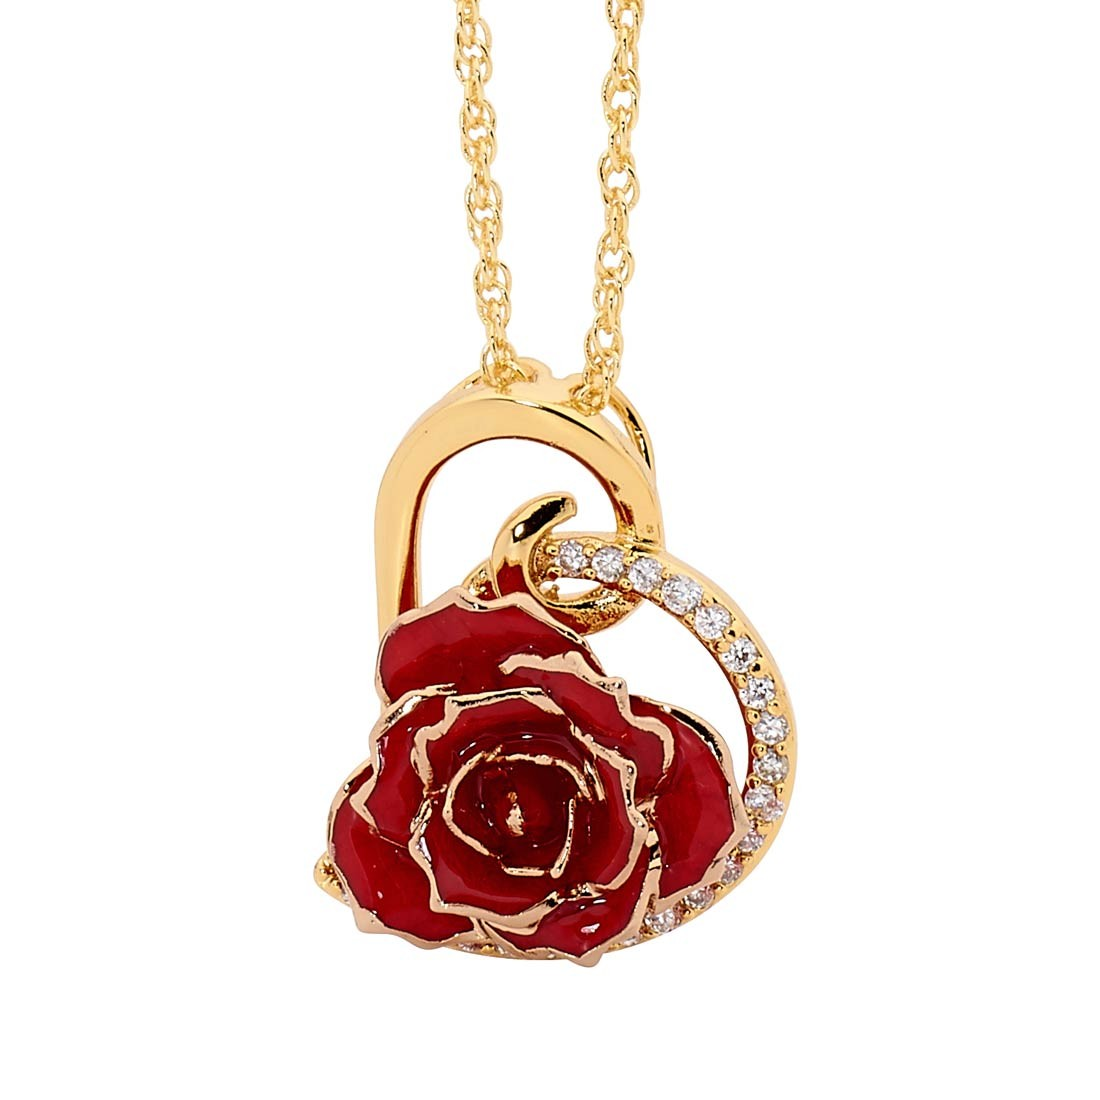 Red Matched Set in 24K Gold Heart Theme. Glazed Rose Pendant ...